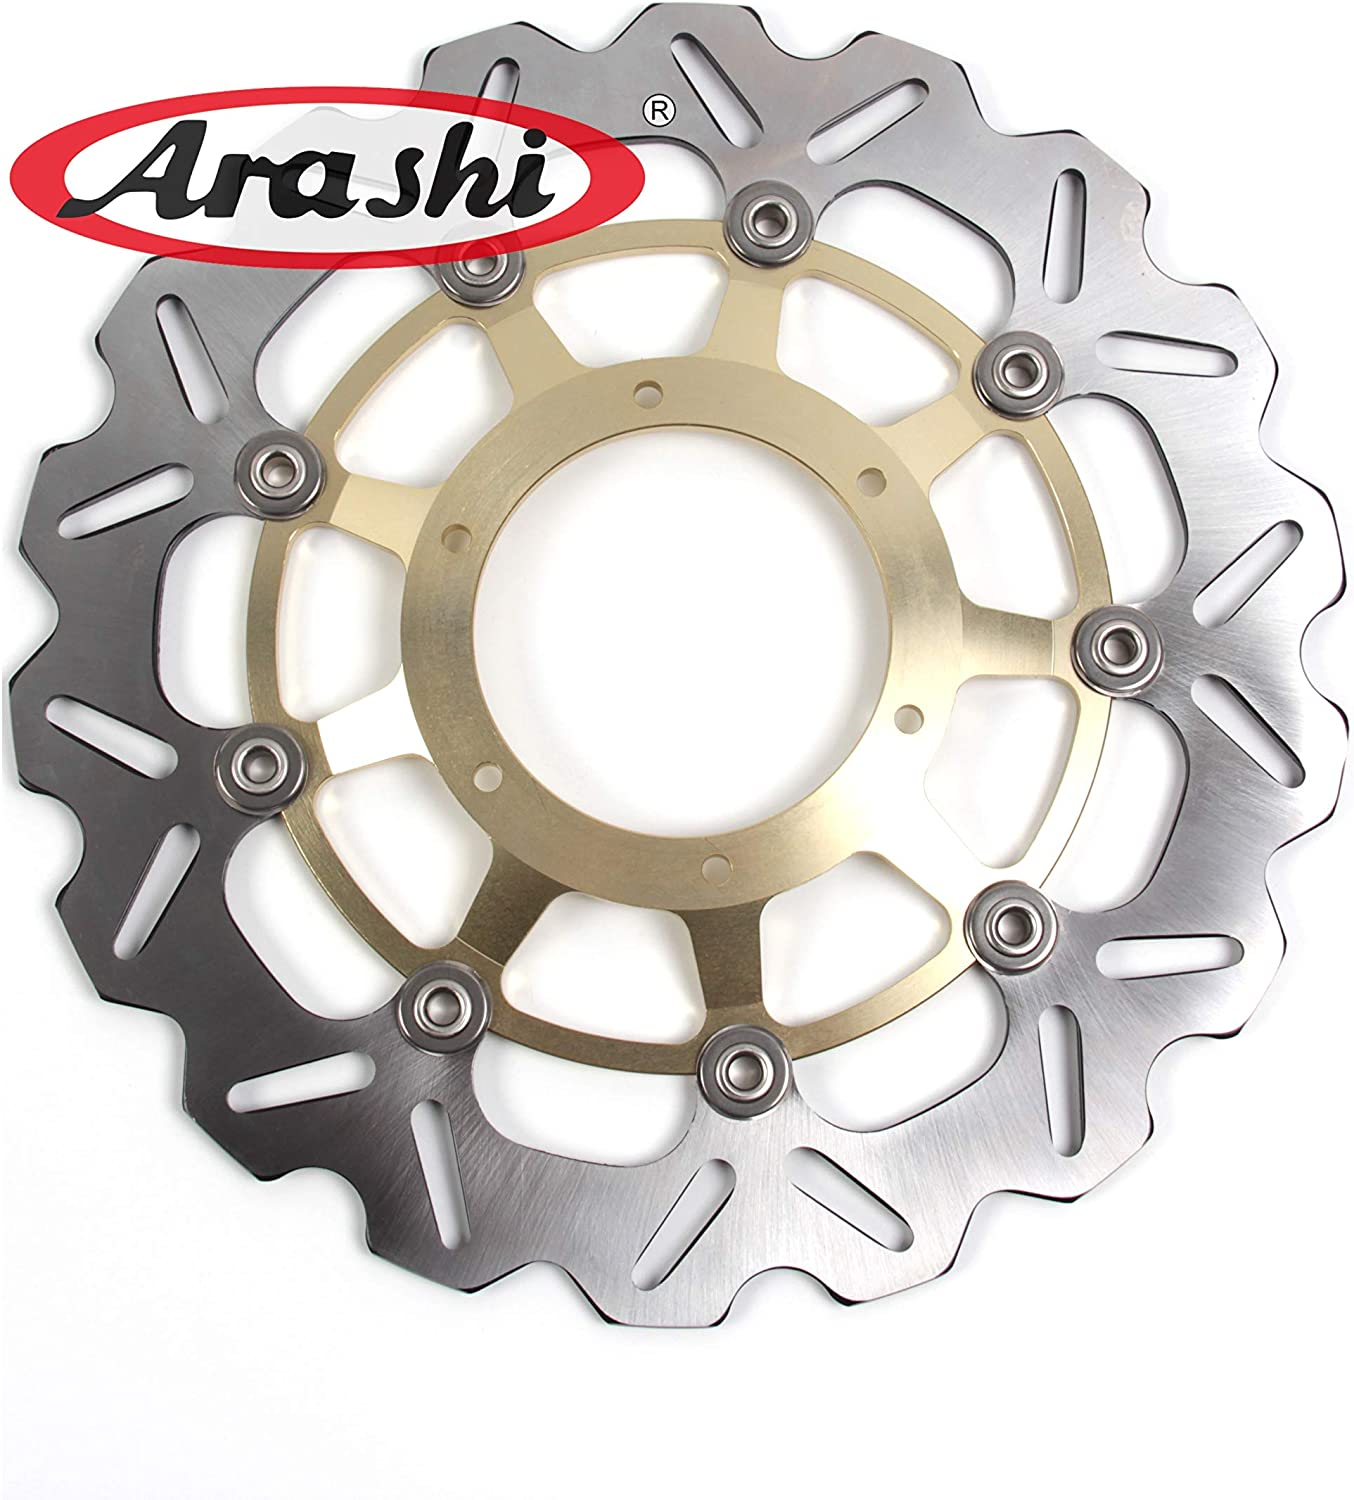 Arashi Rear Brake Disc Rotor for Honda CBR600RR 2003-2015 ABS 2009-2015 SP 2014 2015 Motorcycle Replacement Accessories 2004 2005 2006 2007 2008 2010 2011 2012 2013 2014